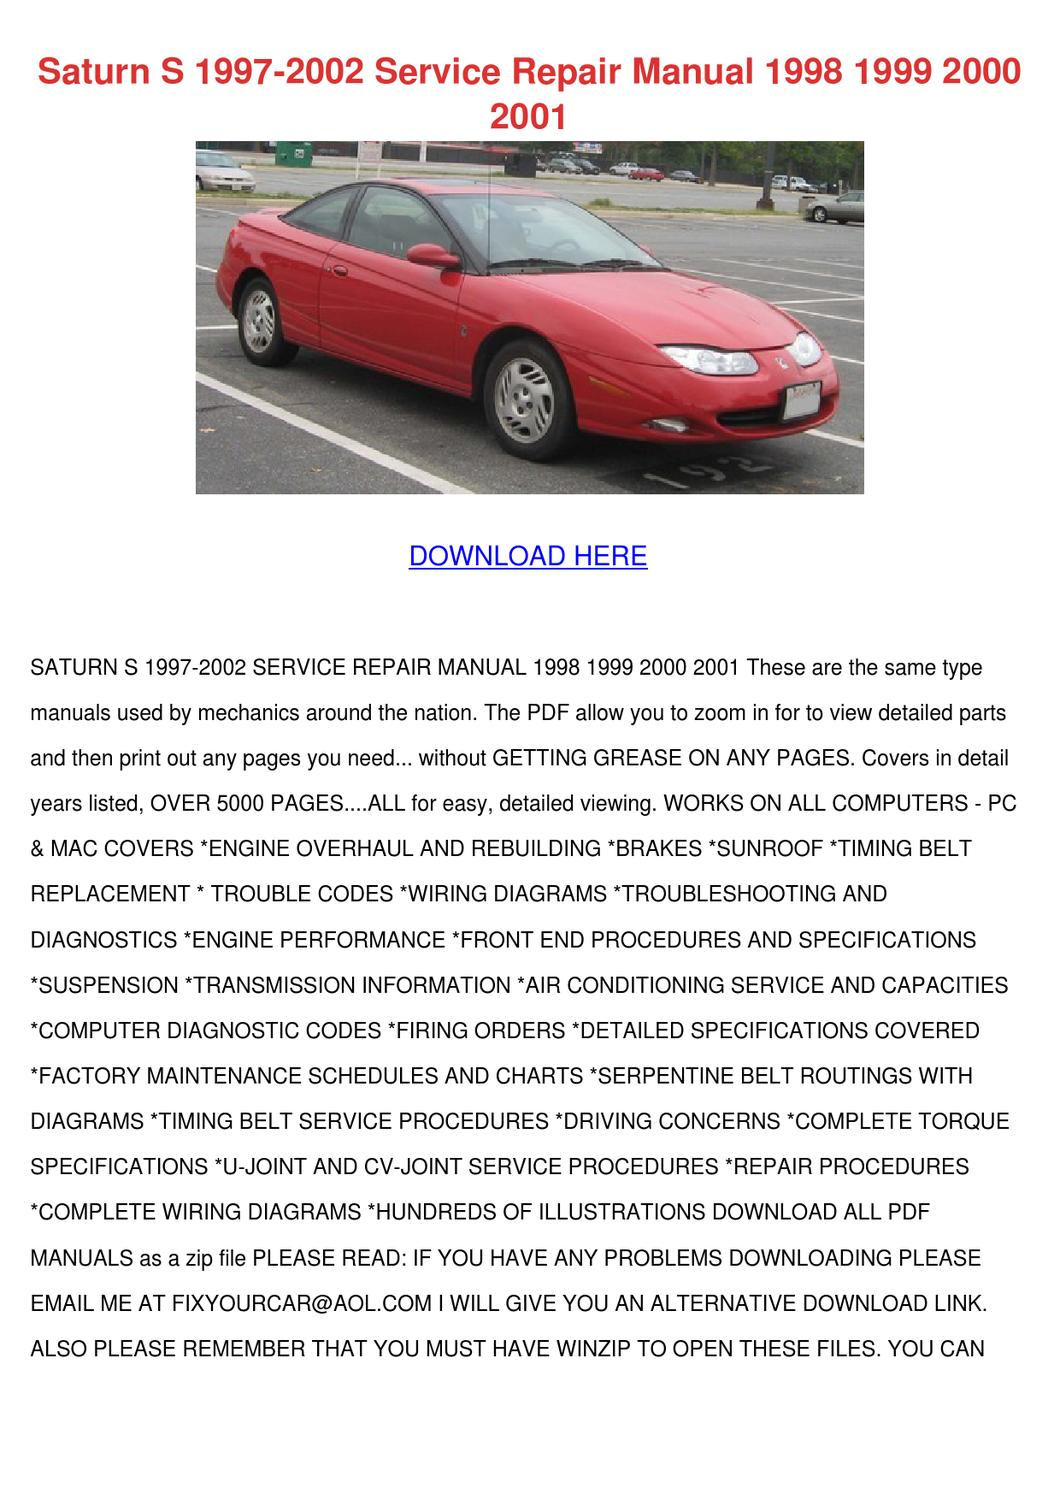 Saturn S 1997 2002 Service Repair Manual 1998 by Song Rease - issuu